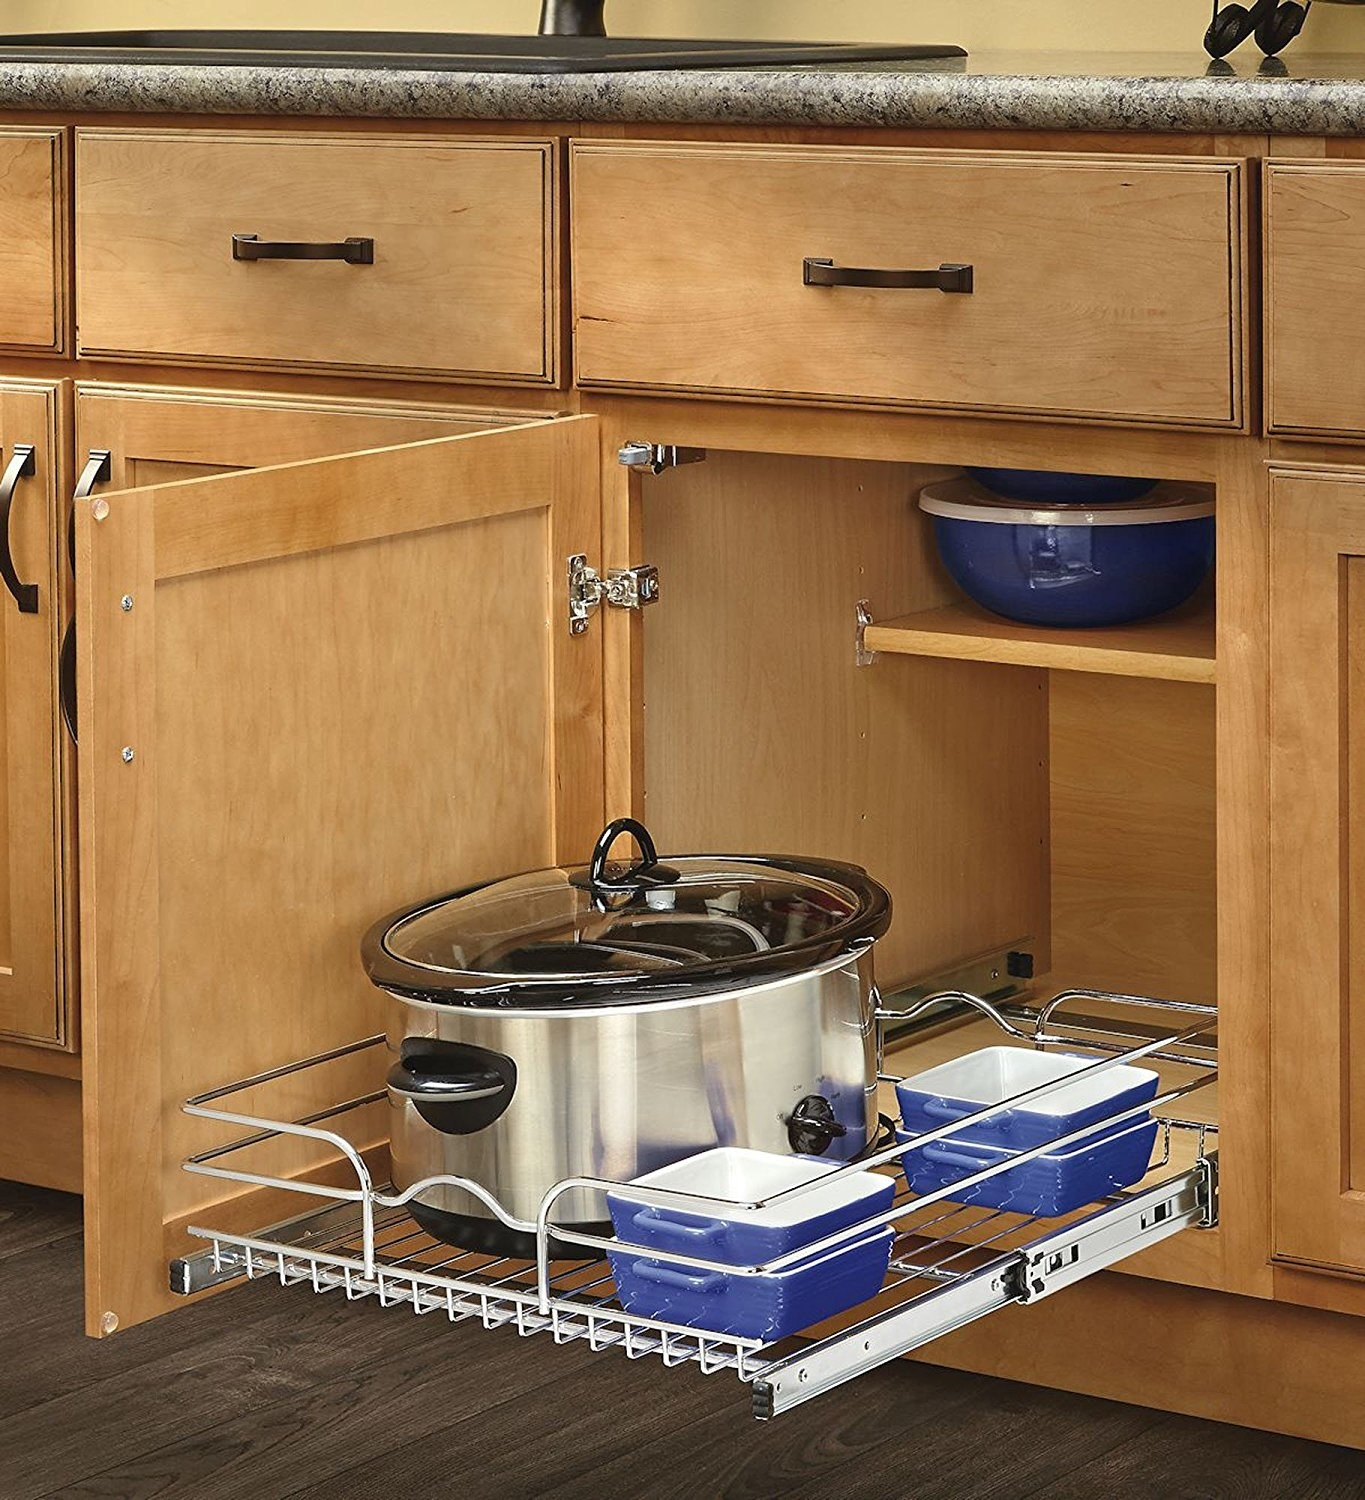 make your cabinet space a little more accessible with slideout racks that can hold your pots lids and baking tools